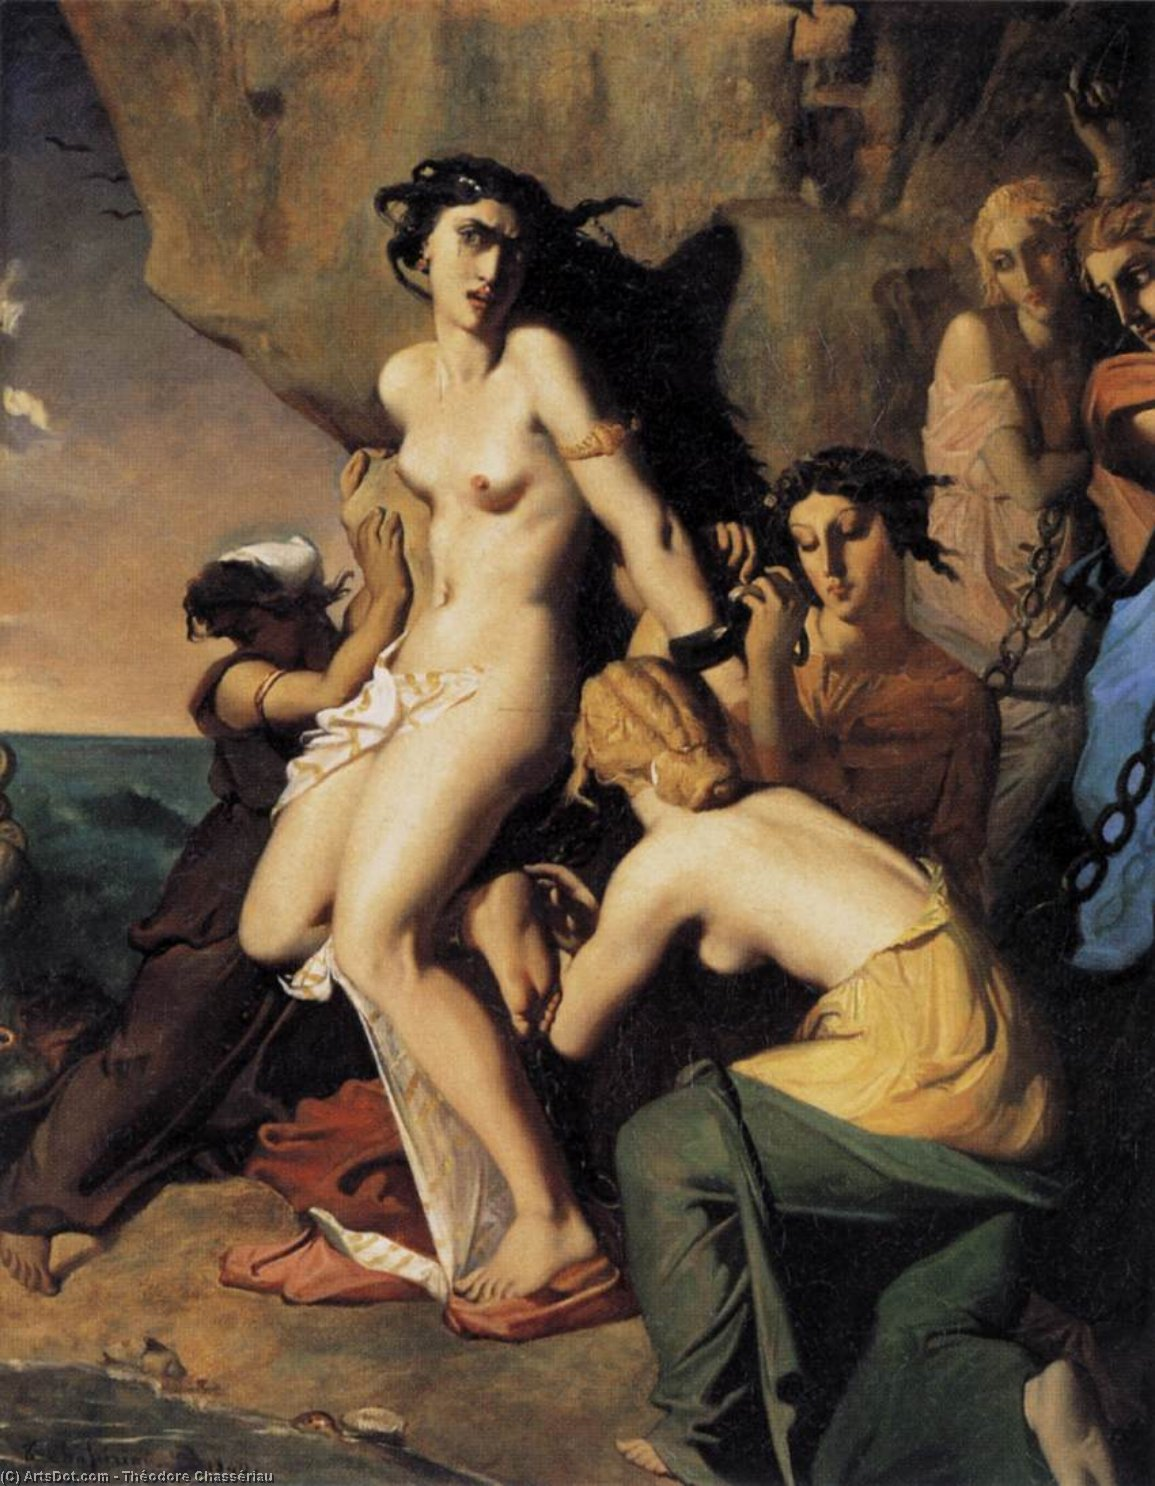 Order Oil Painting : Andromeda and the Nereids, 1840 by Théodore Chassériau (1819-1856, Dominican Republic) | ArtsDot.com